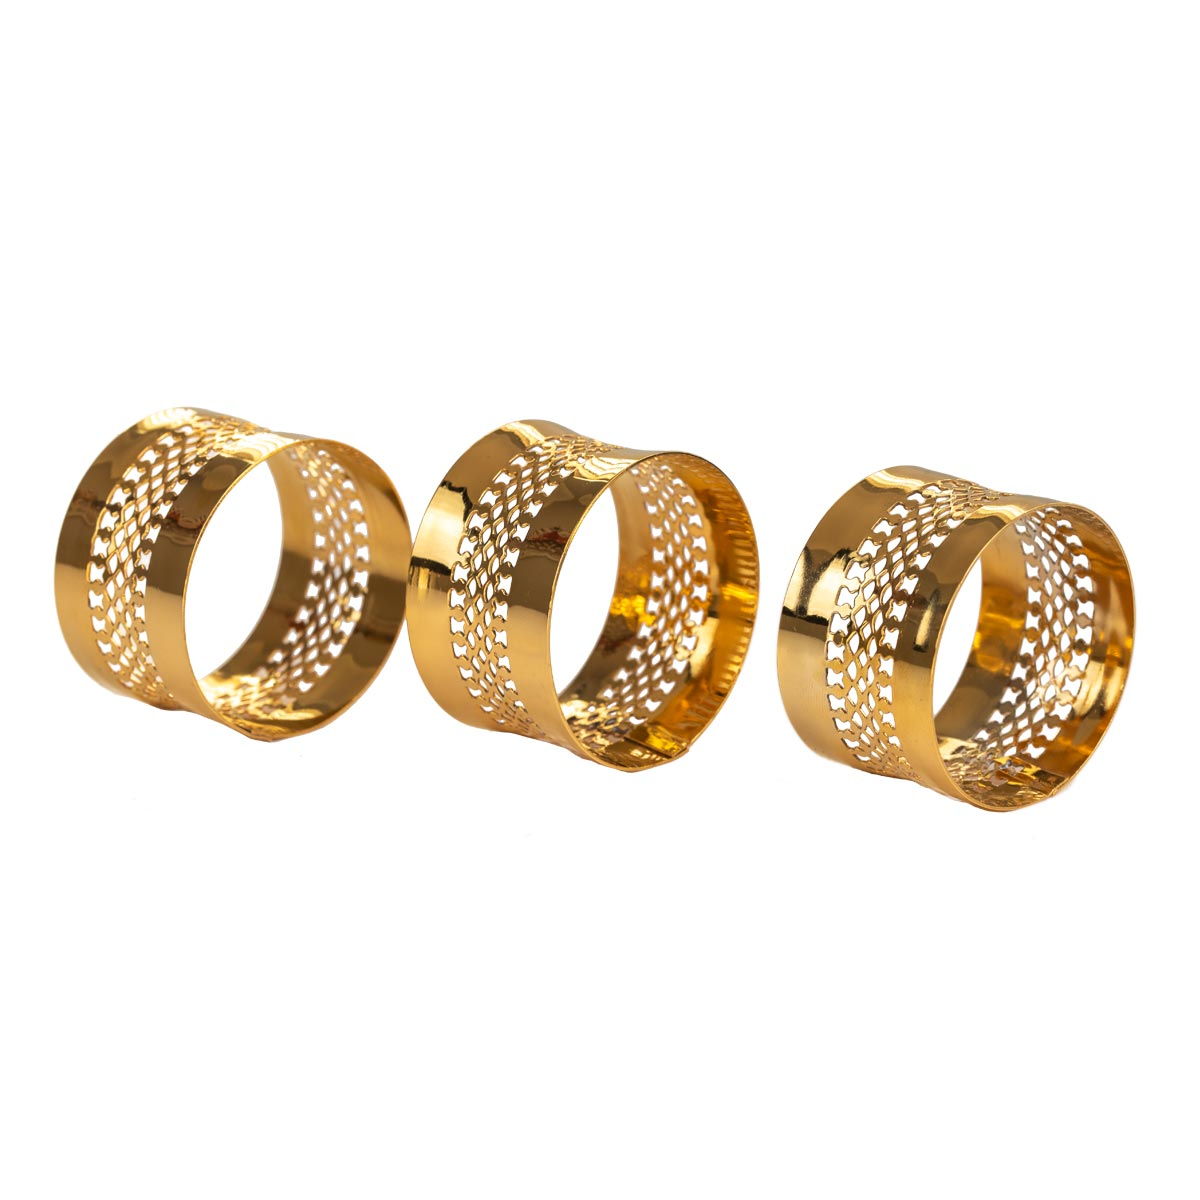 Elite Luxury Gold Plated Napkin Rings x 6